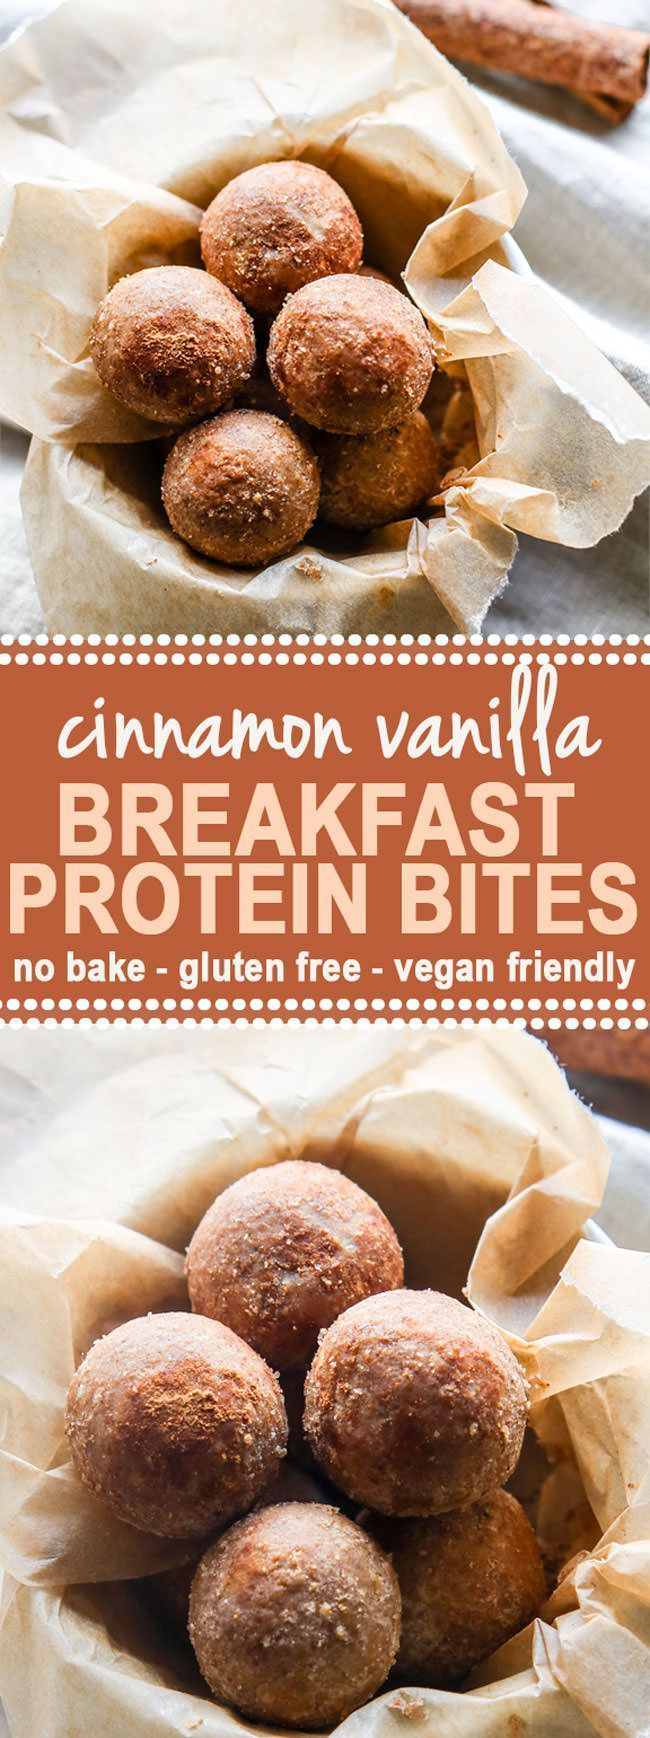 Cinnamon Vanilla Breakfast Protein Bites (No Bake, Gluten Free, Vegan Friendly)